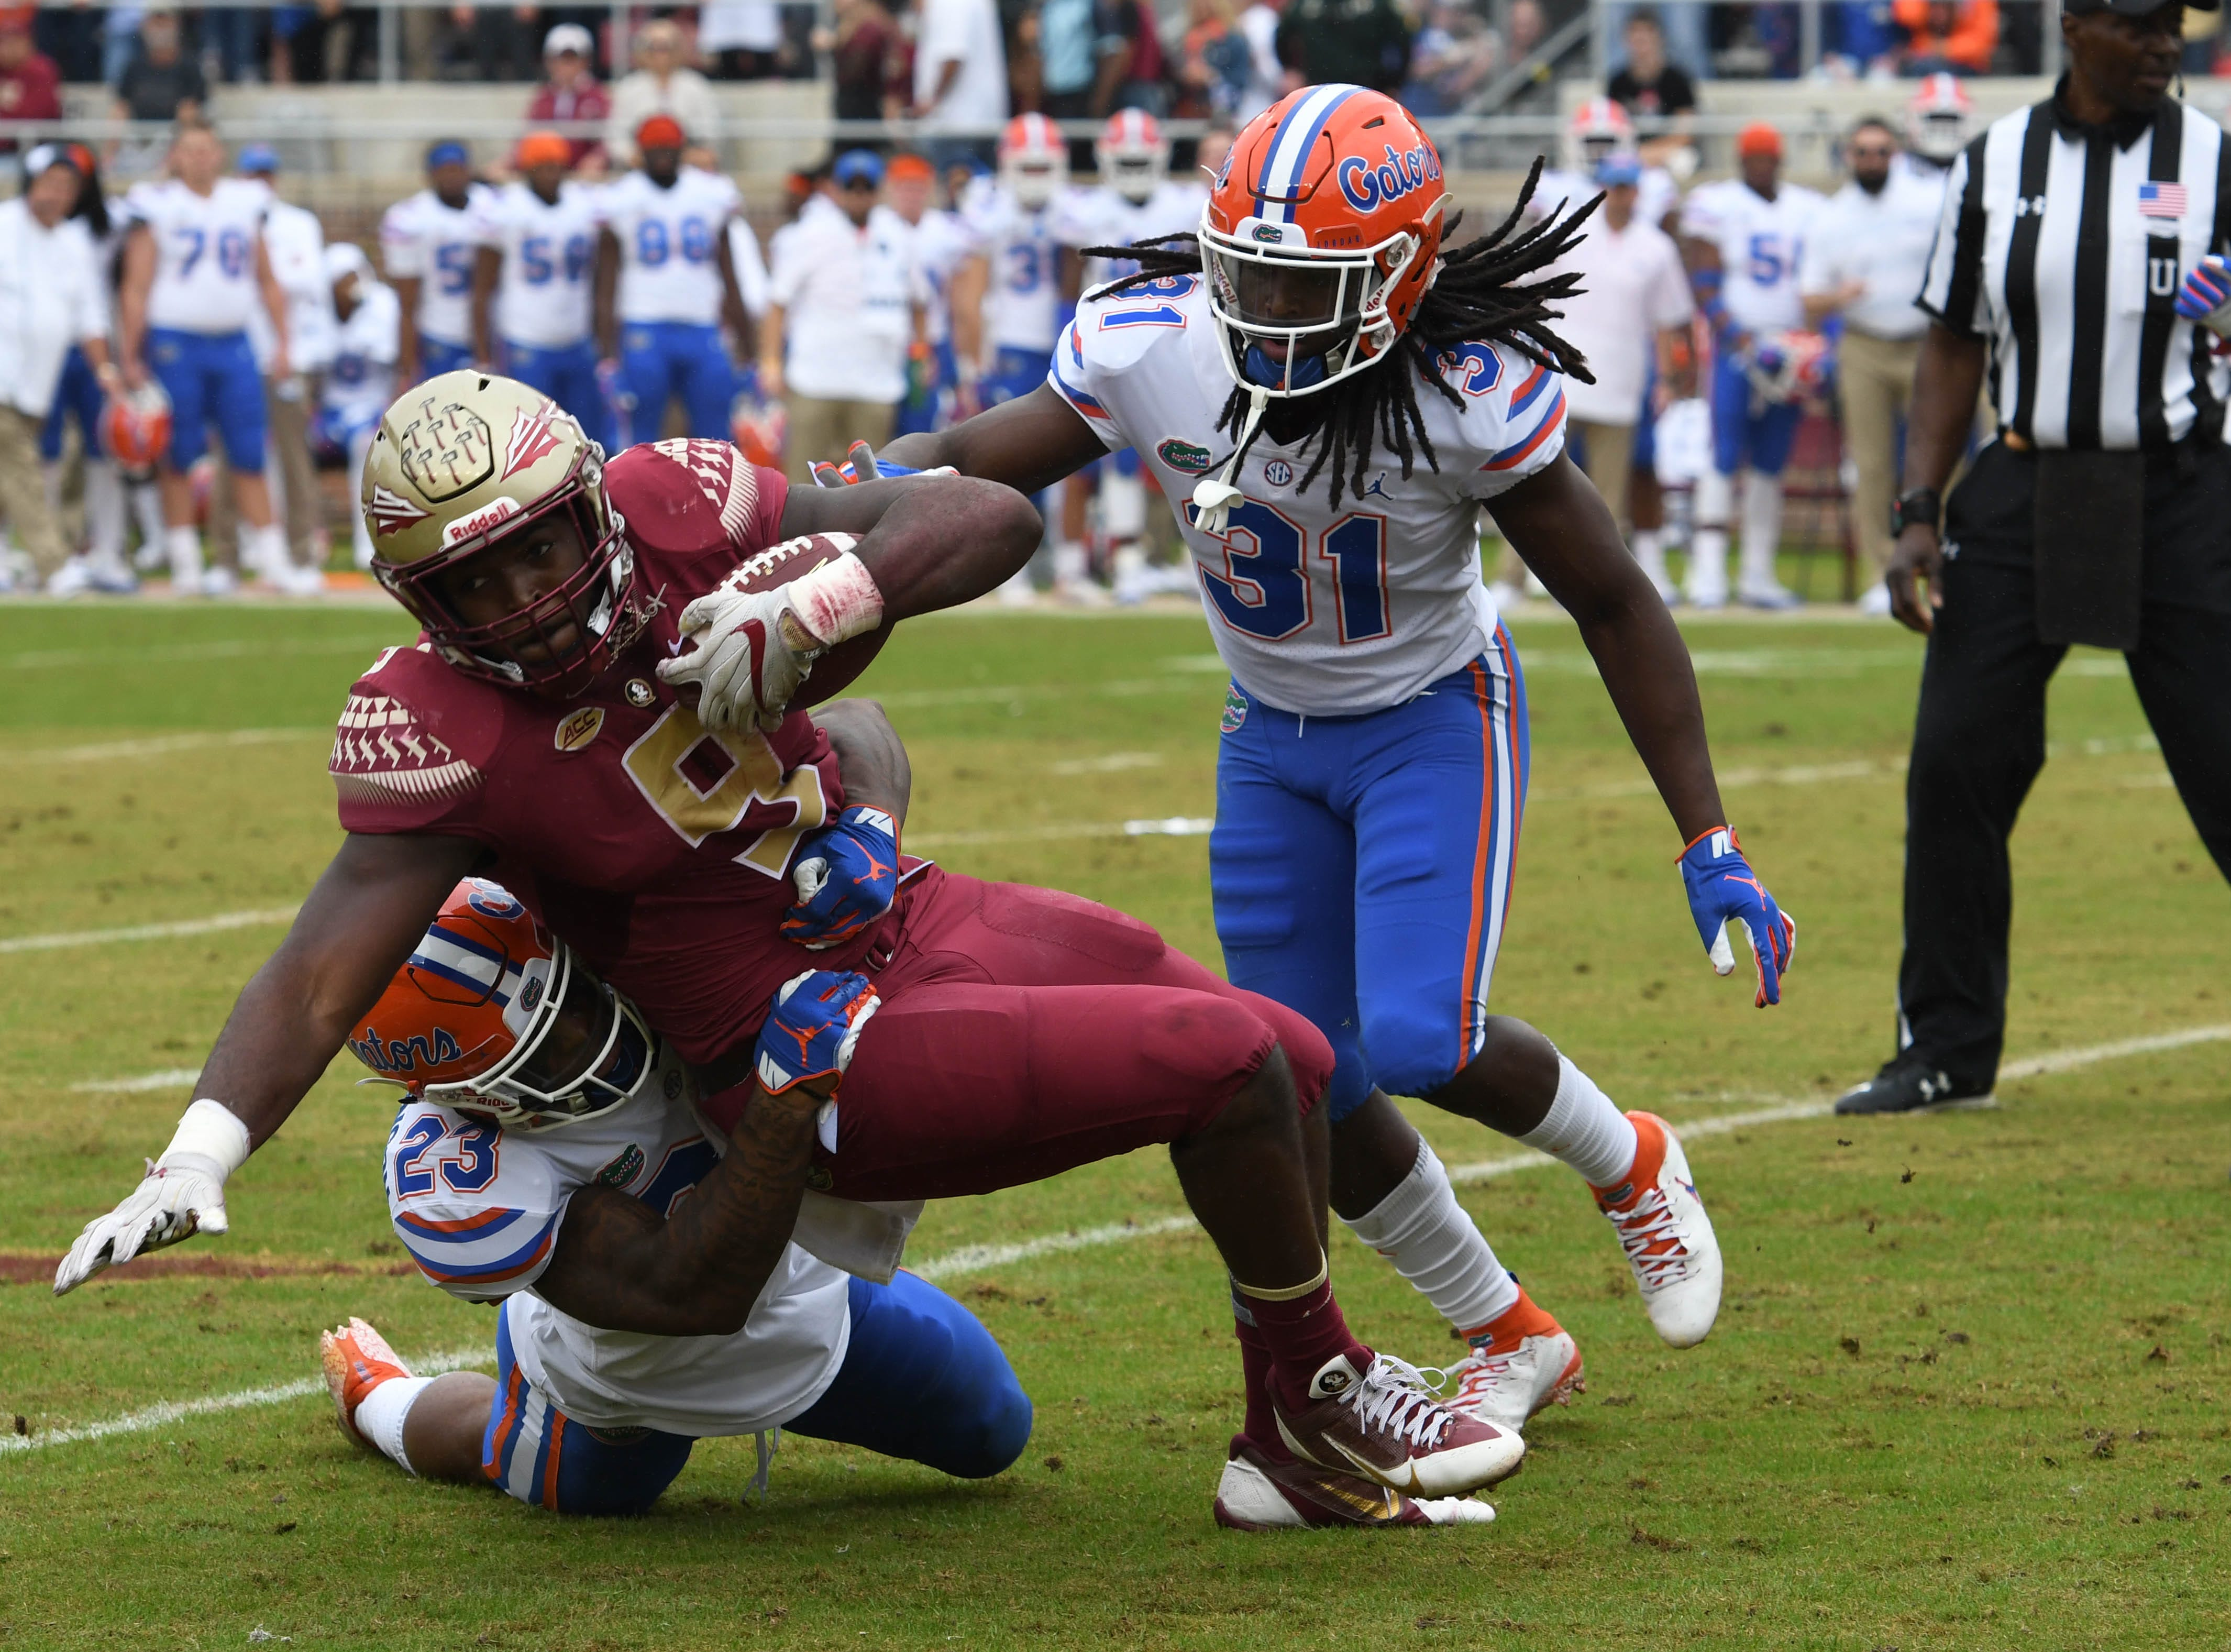 FSU senior runnning back Jacques Patrick (9) gaining a first down in the first quarter of the the FSU game against UF at Doak Campbell Stadium on Novemeber 24, 2018.